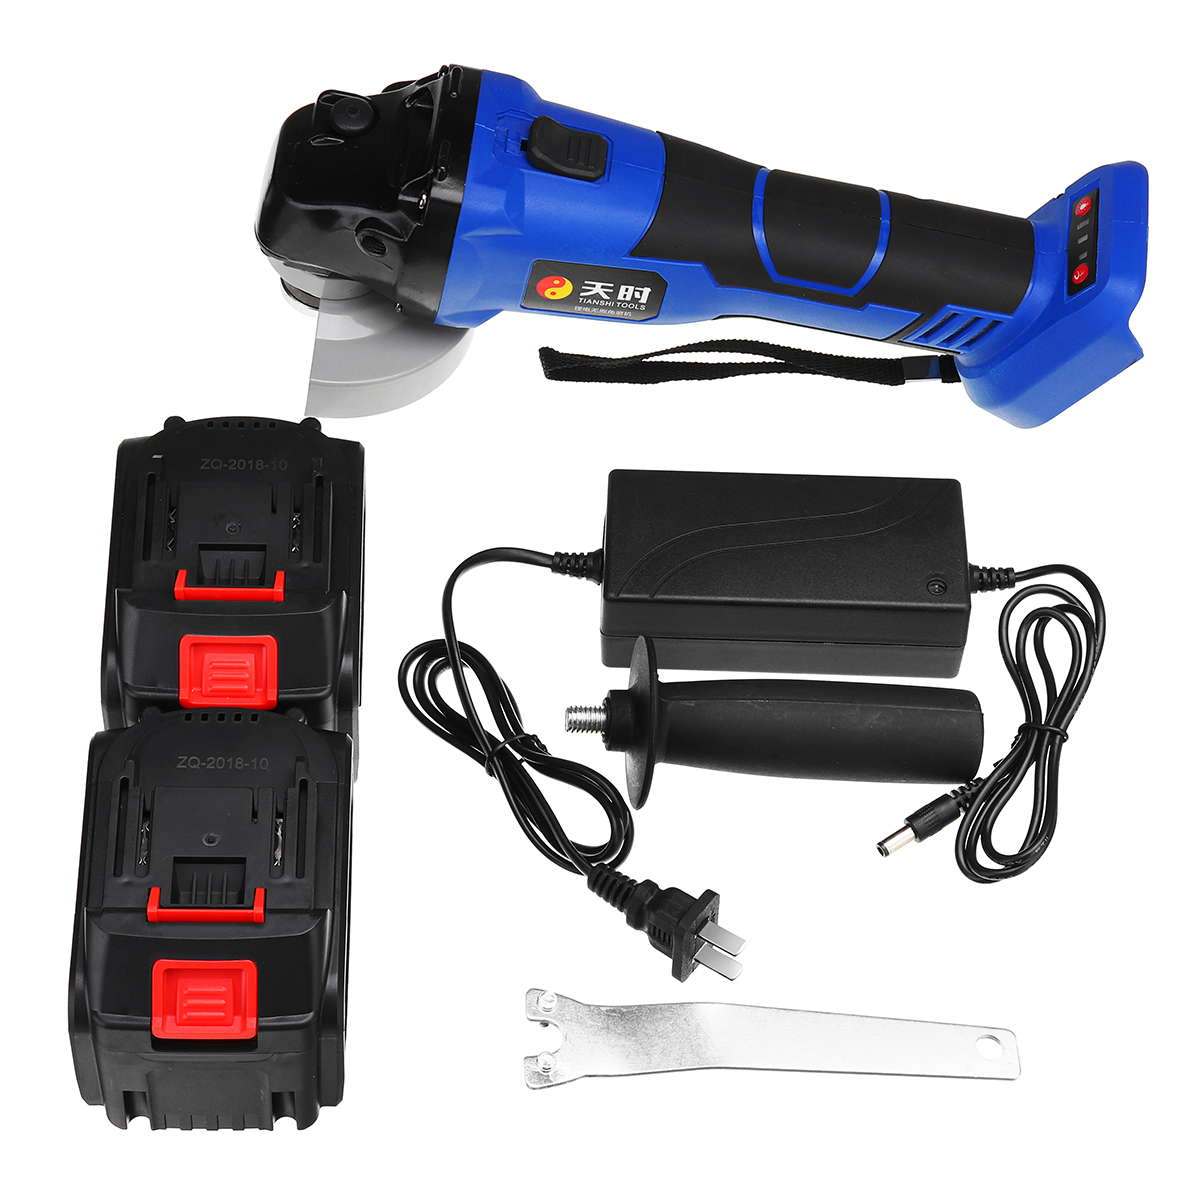 168VF 22500mA Rechargeable Cordless Eectric Angle Grinder Set with 1Pcs or 2Pcs Li-ion Batteries